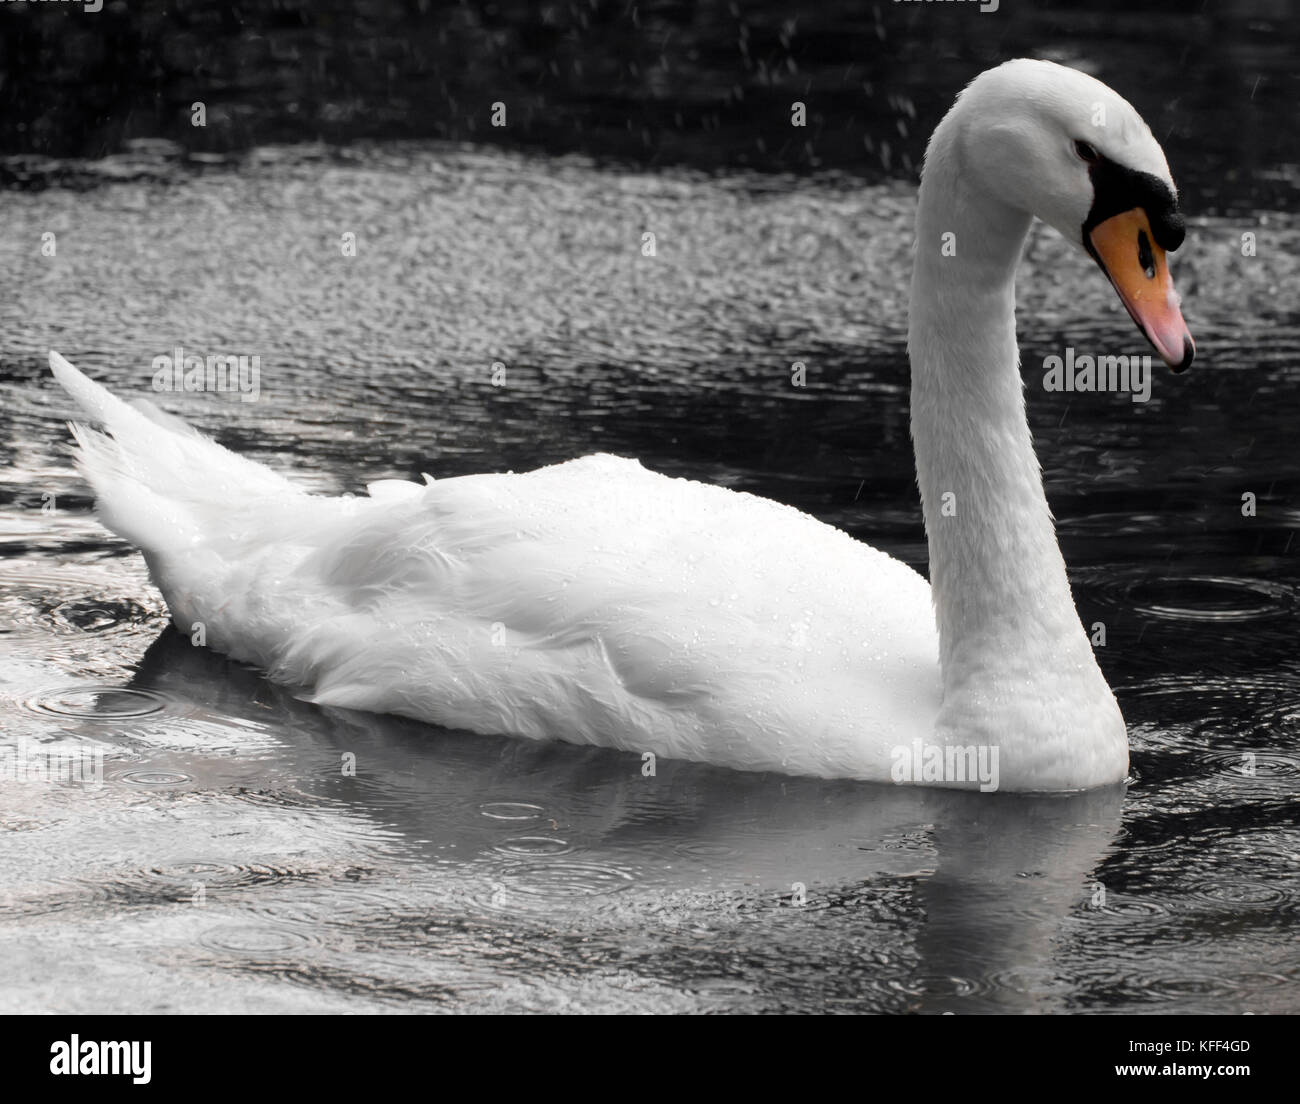 A beautiful swan glides across the water in a seemingly sullen tearful mood - Stock Image